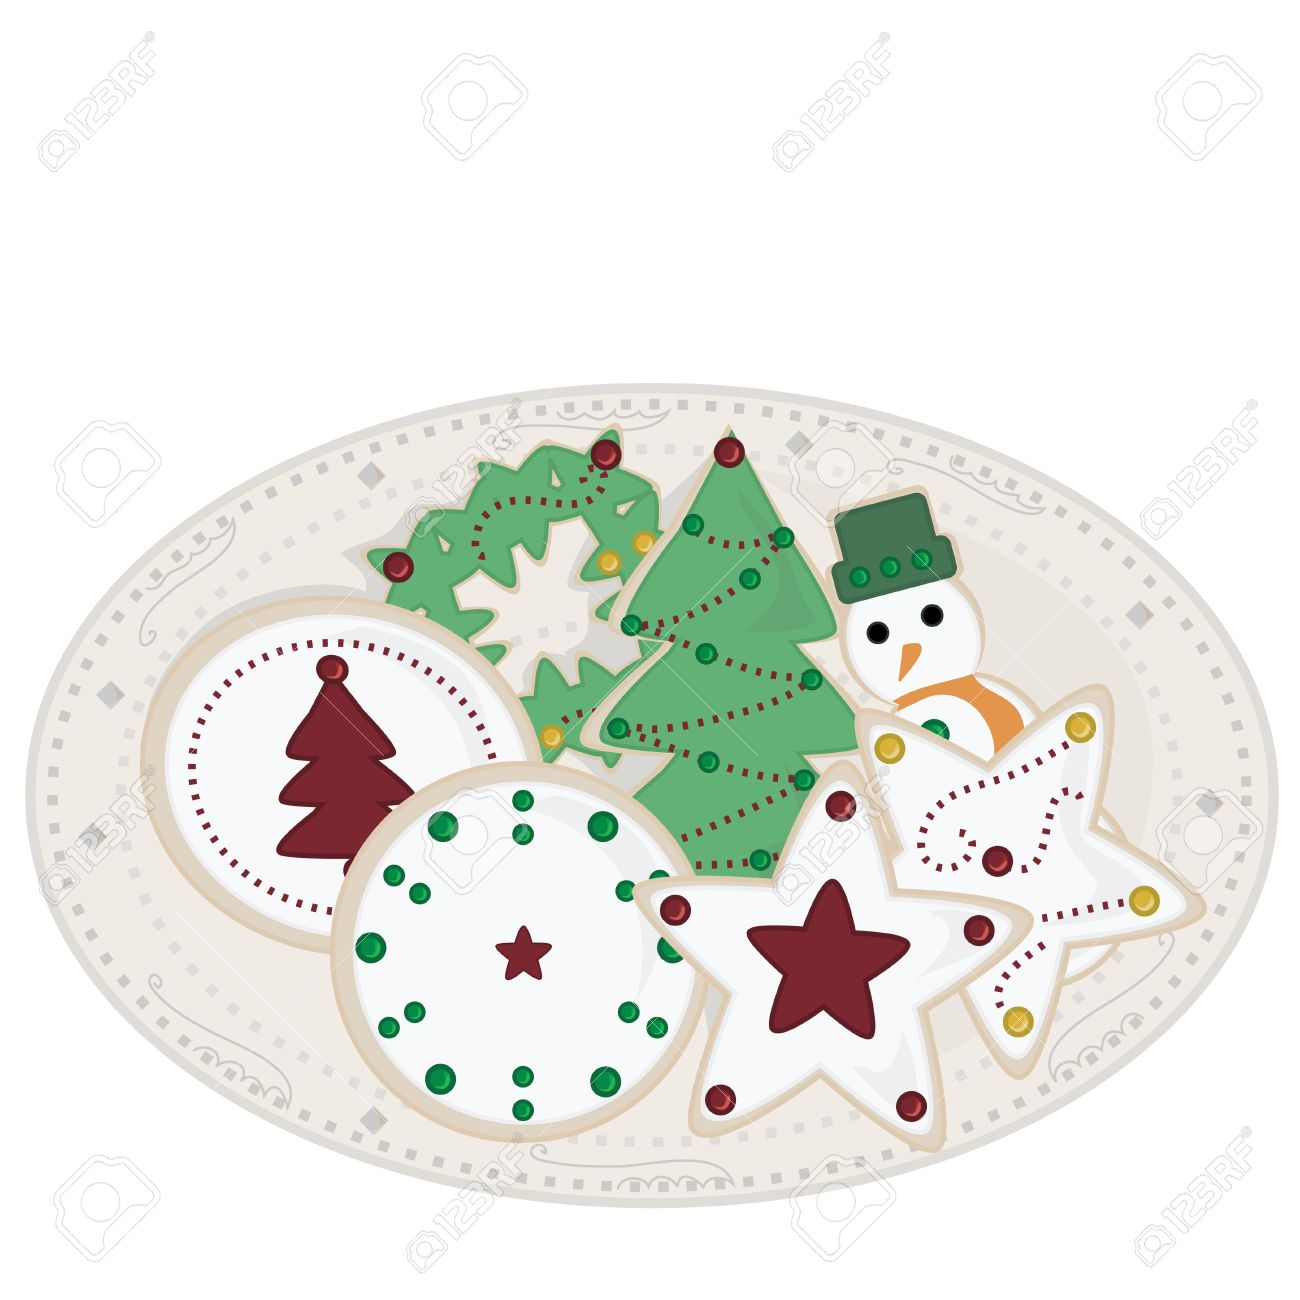 Holiday Sugar Cookies on Plate - 2753022